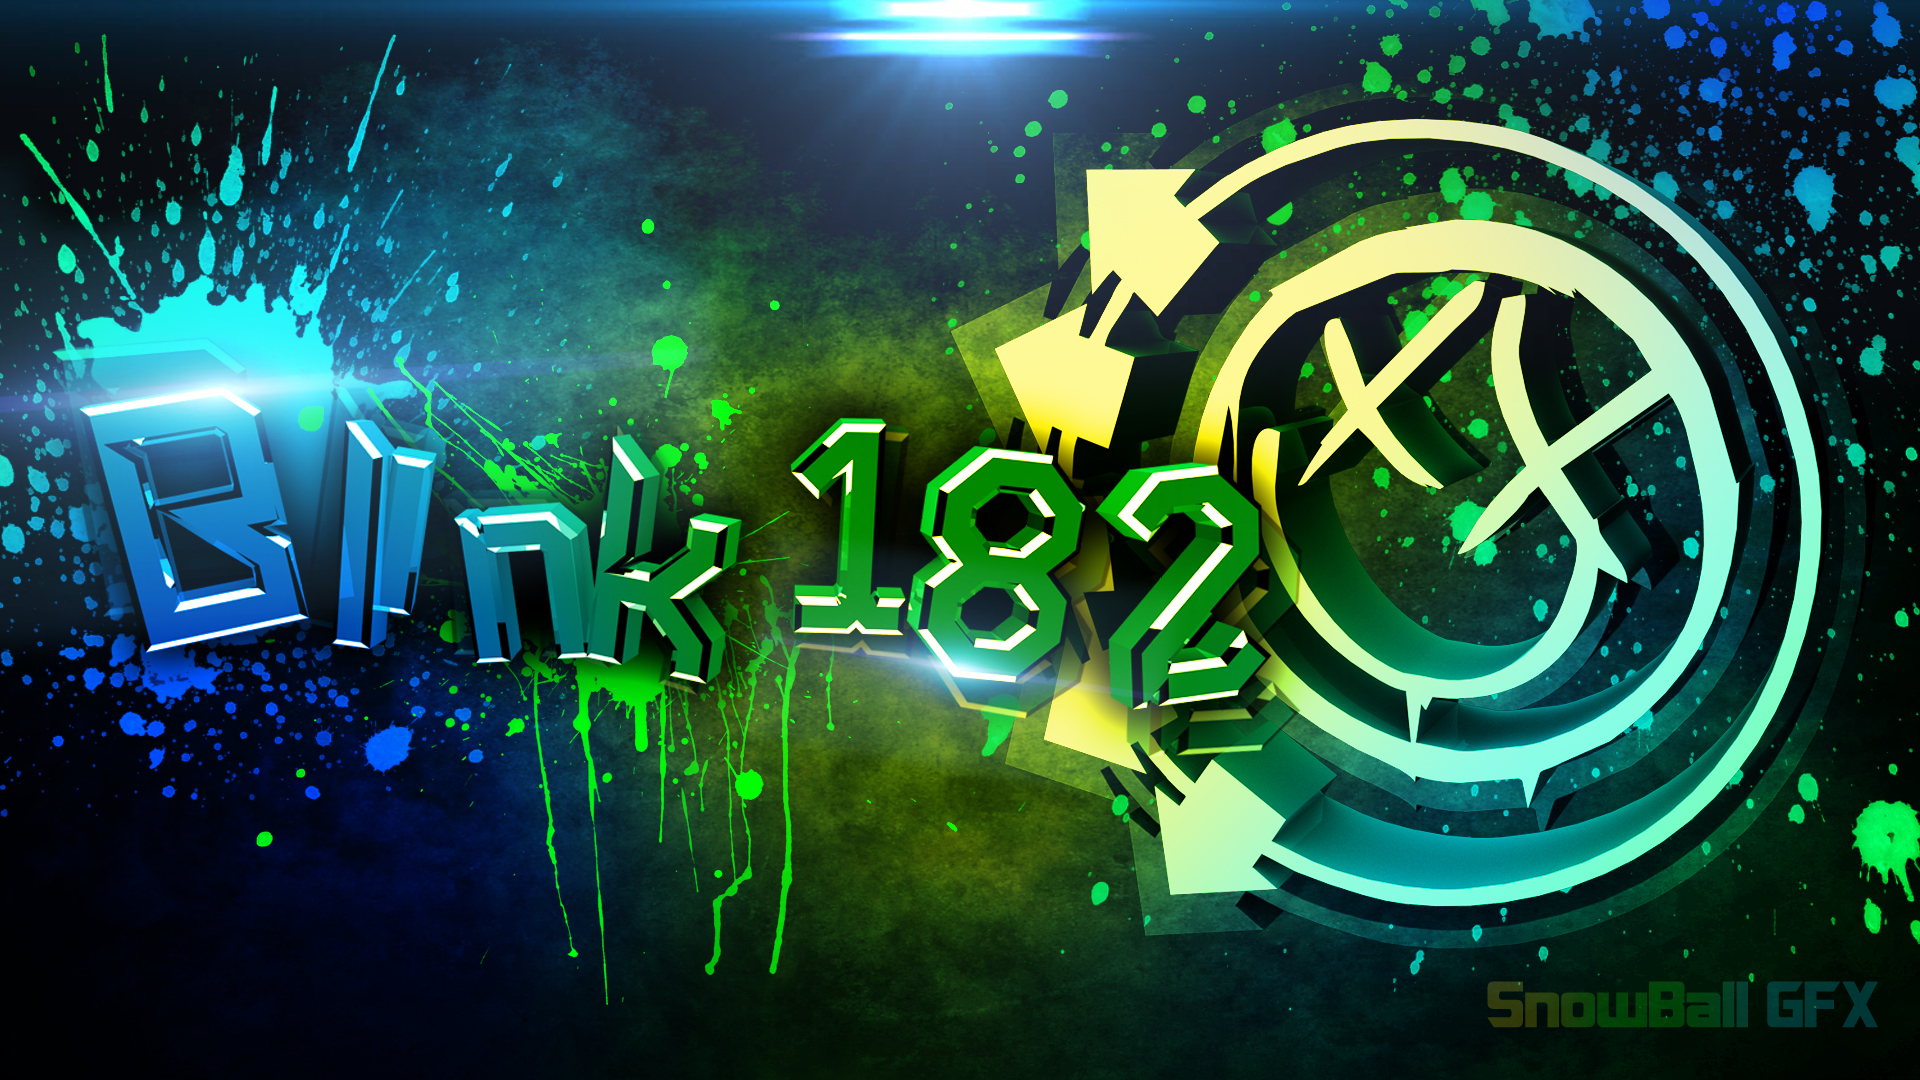 Blink 182 ABSTRACT by SnowBallGFX on DeviantArt